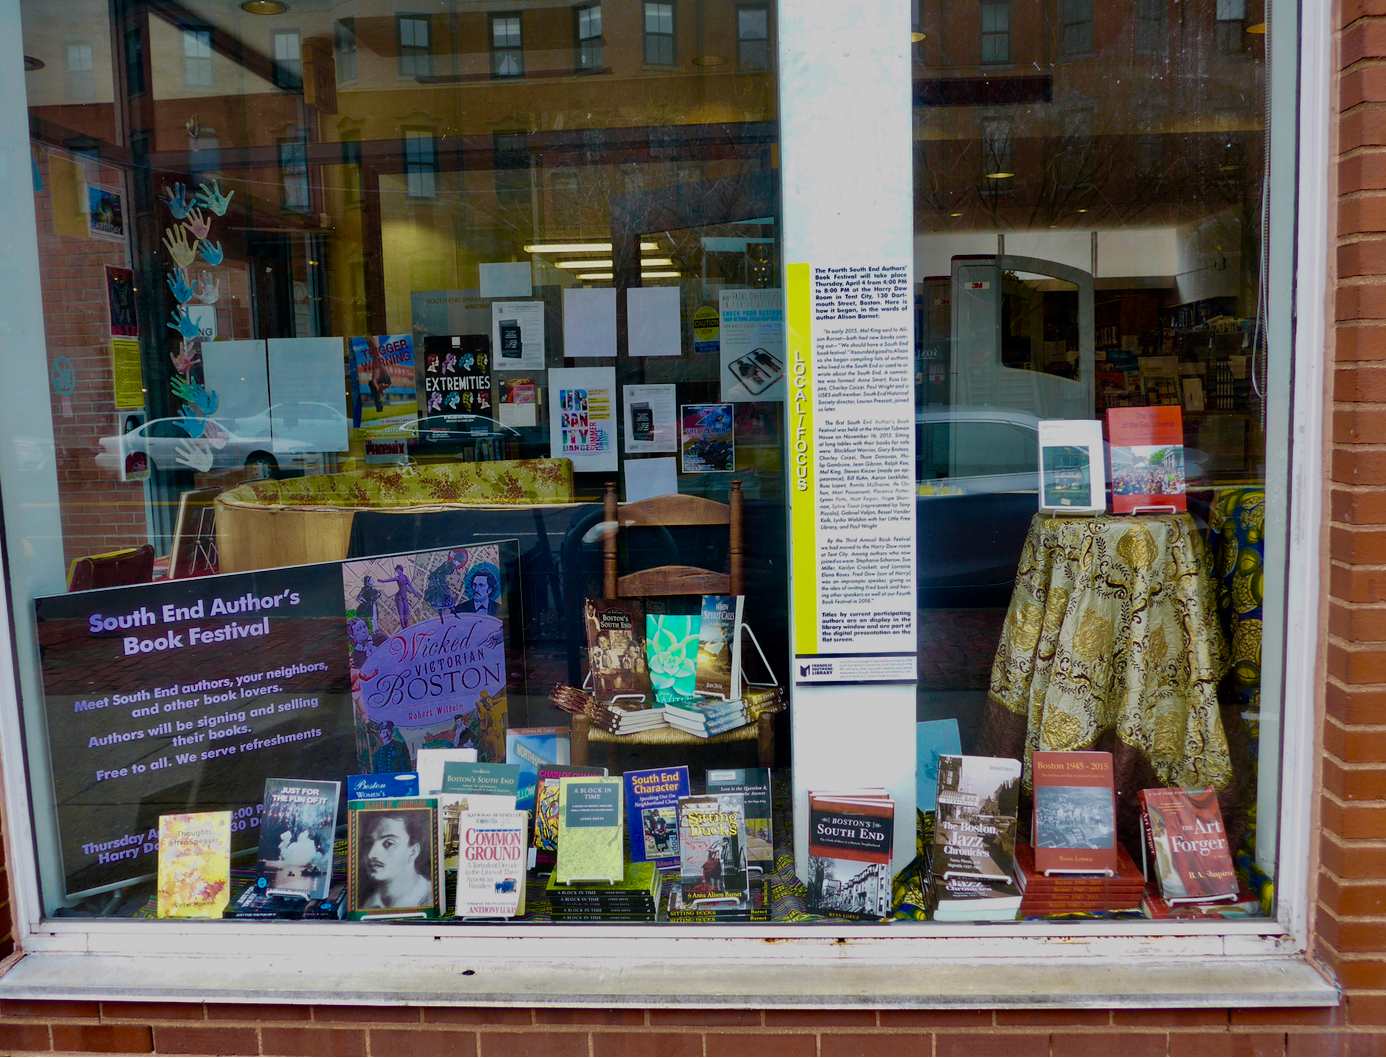 A selection of the many titles by South End authors participating in the Fourth Annual South End Authors' Book Festival in Tent City on display in the South End library window